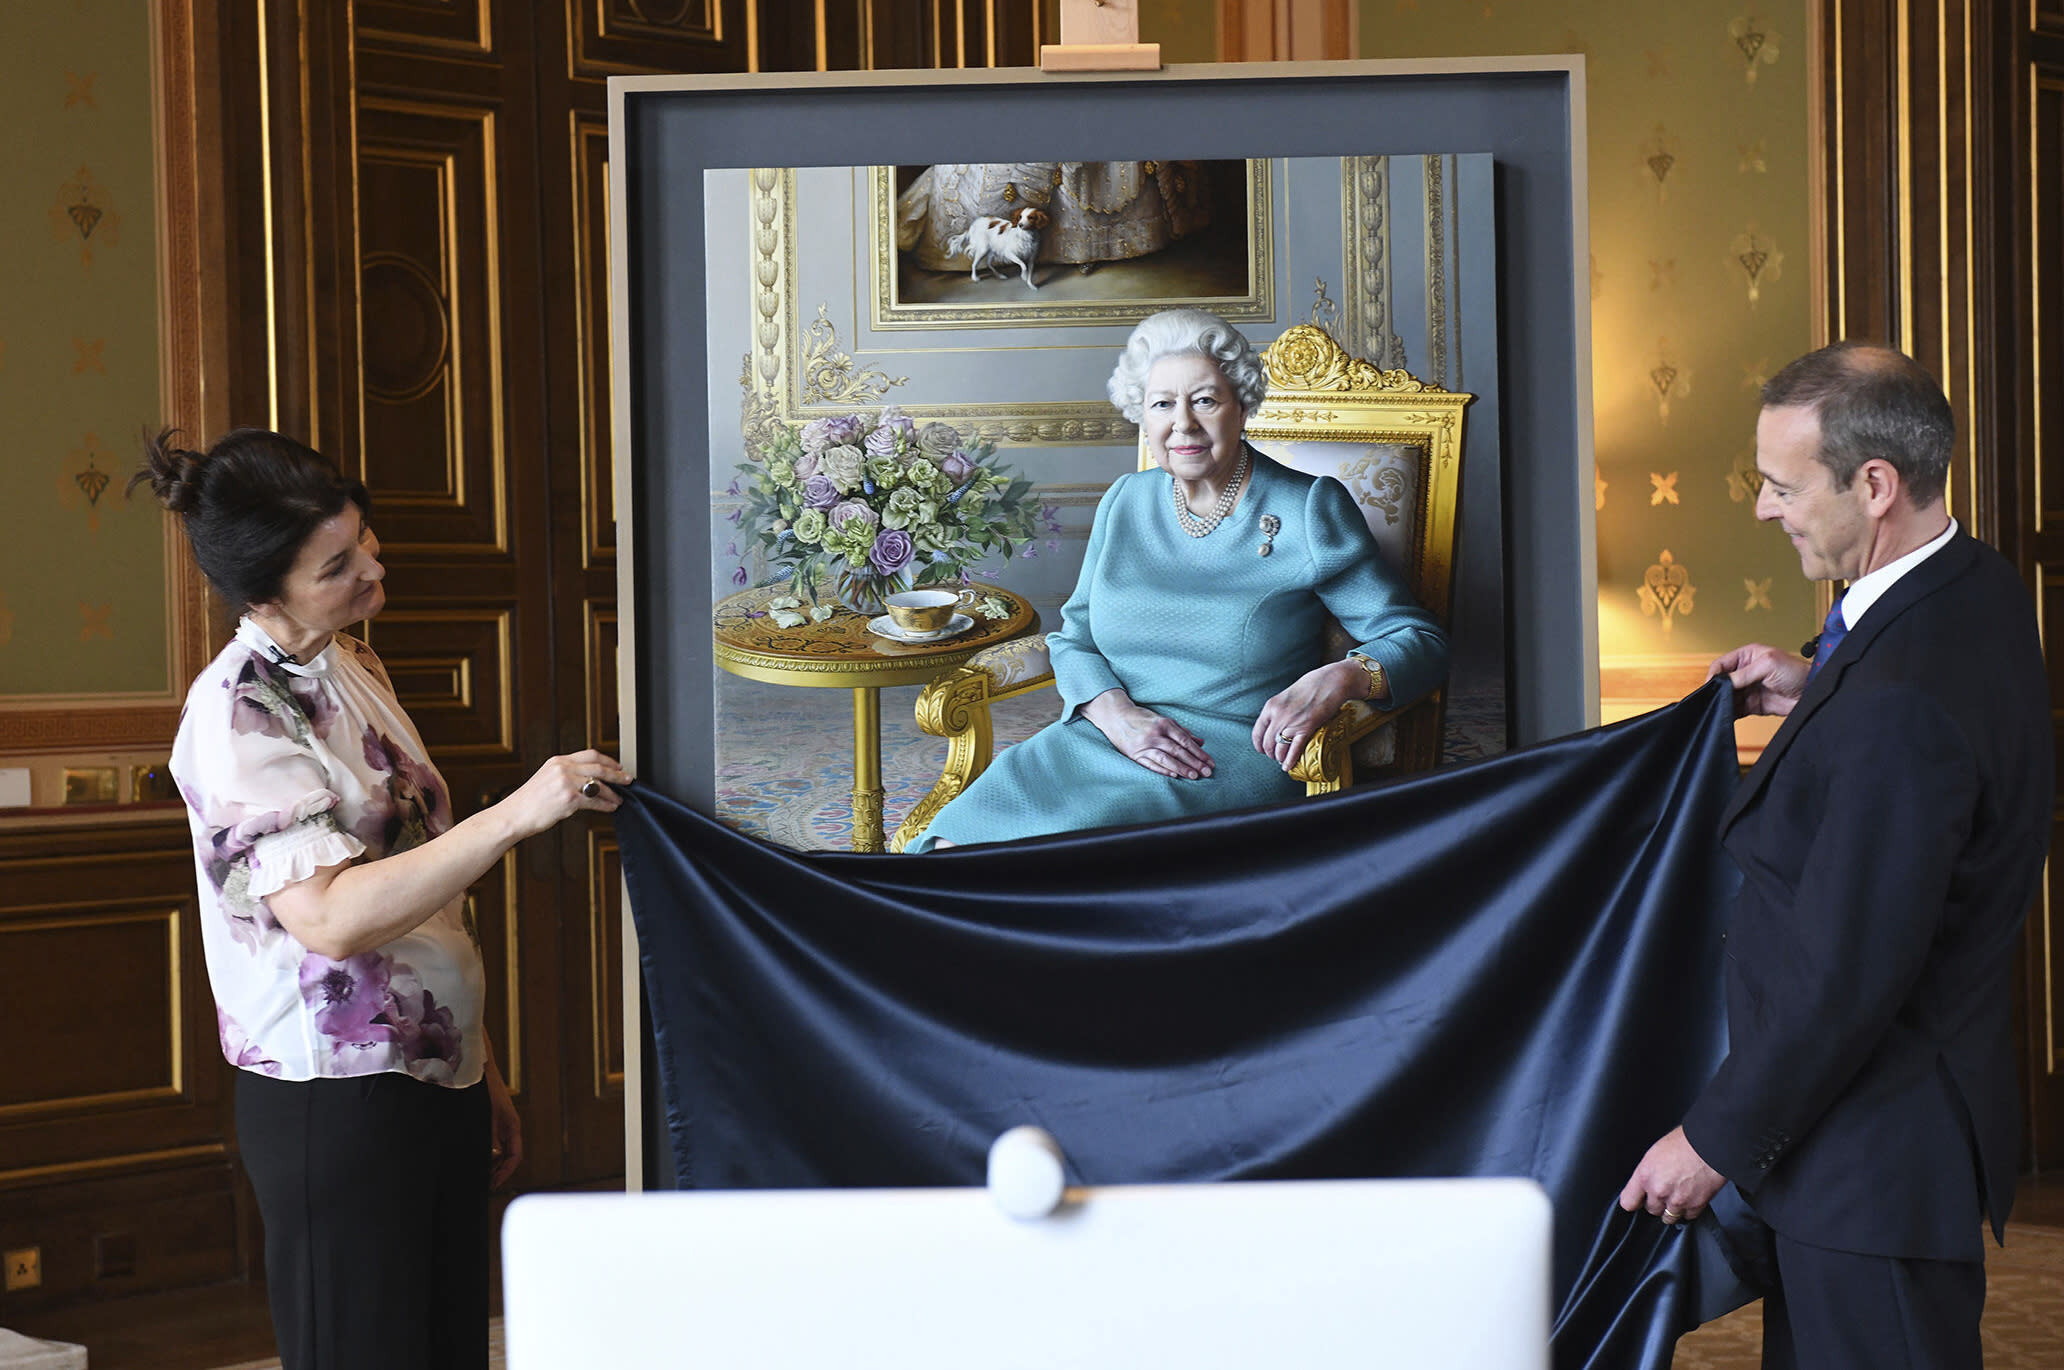 Queen Elizabeth sees new portrait unveiled at Britain's Foreign Office